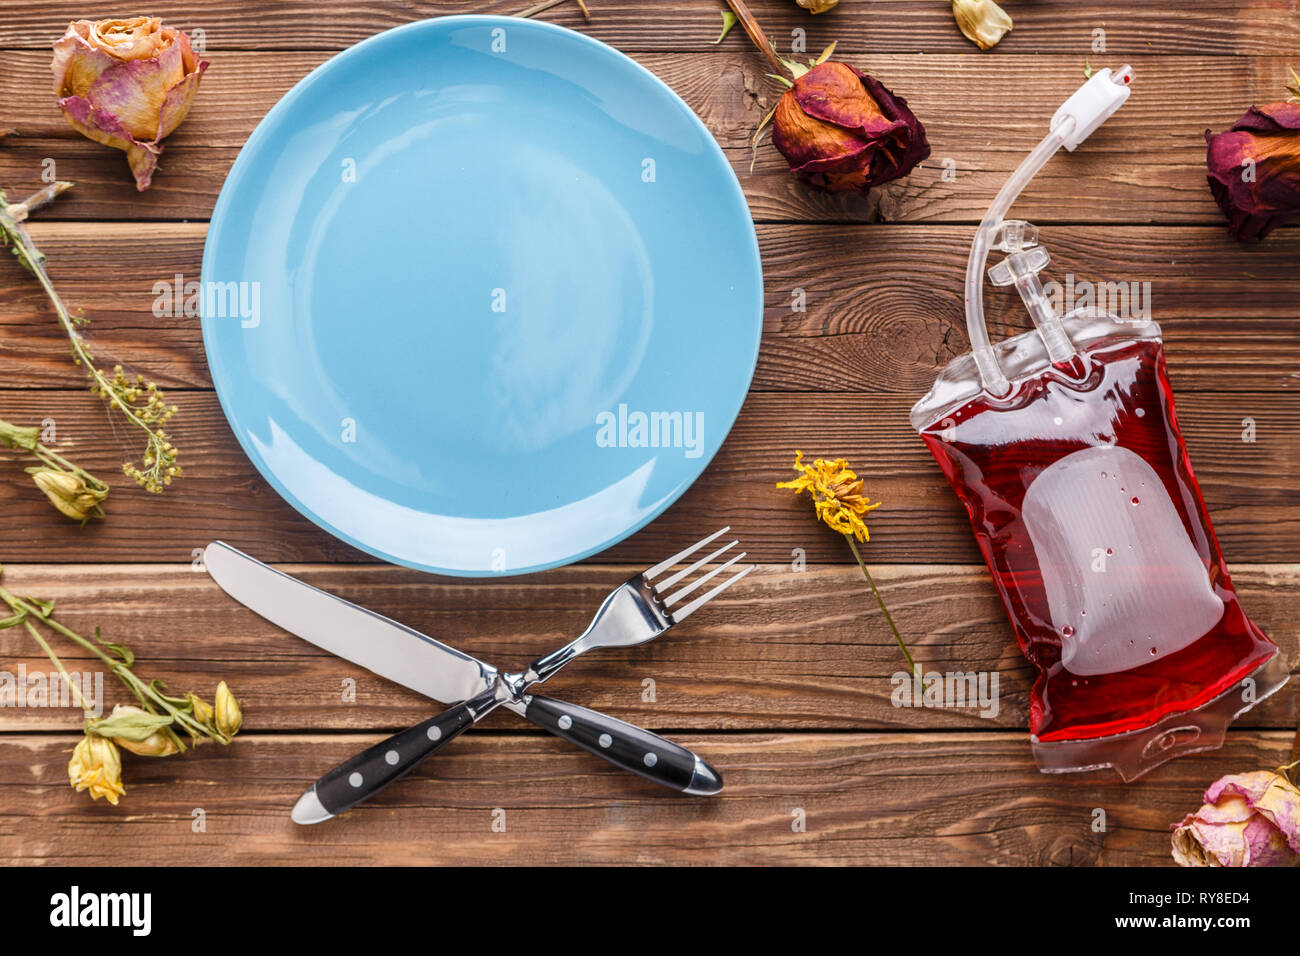 Wooden table with plate,flowers - Stock Image